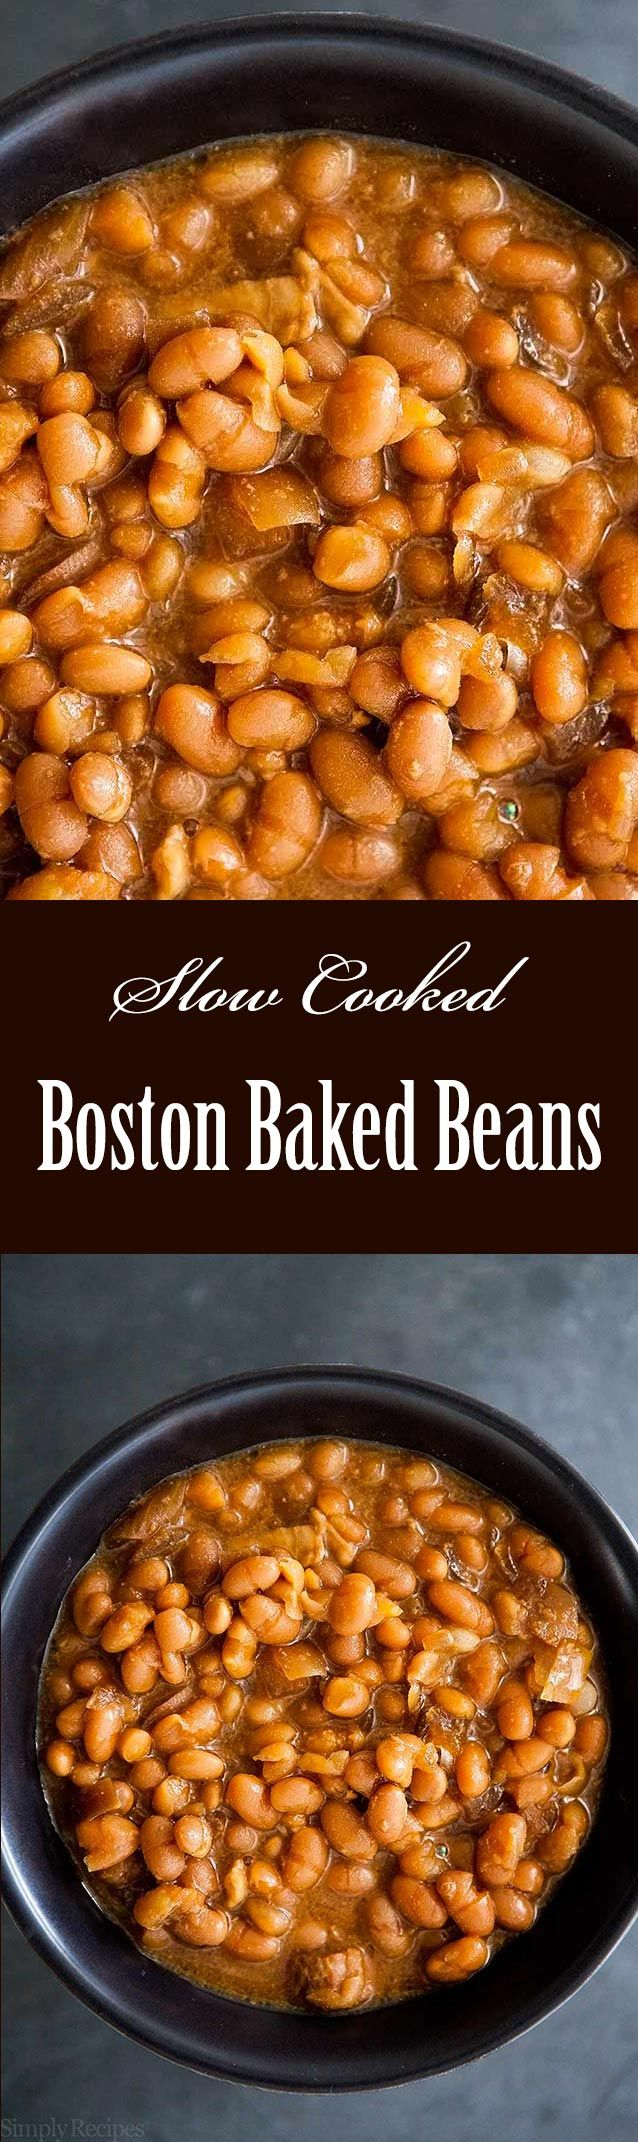 Slow cooked crockpot Boston Baked Beans! Loads of molasses flavor. Great with hot dogs or franks! Perfect for serving a crowd. #GameDay #SuperBowl On SimplyRecipes.com